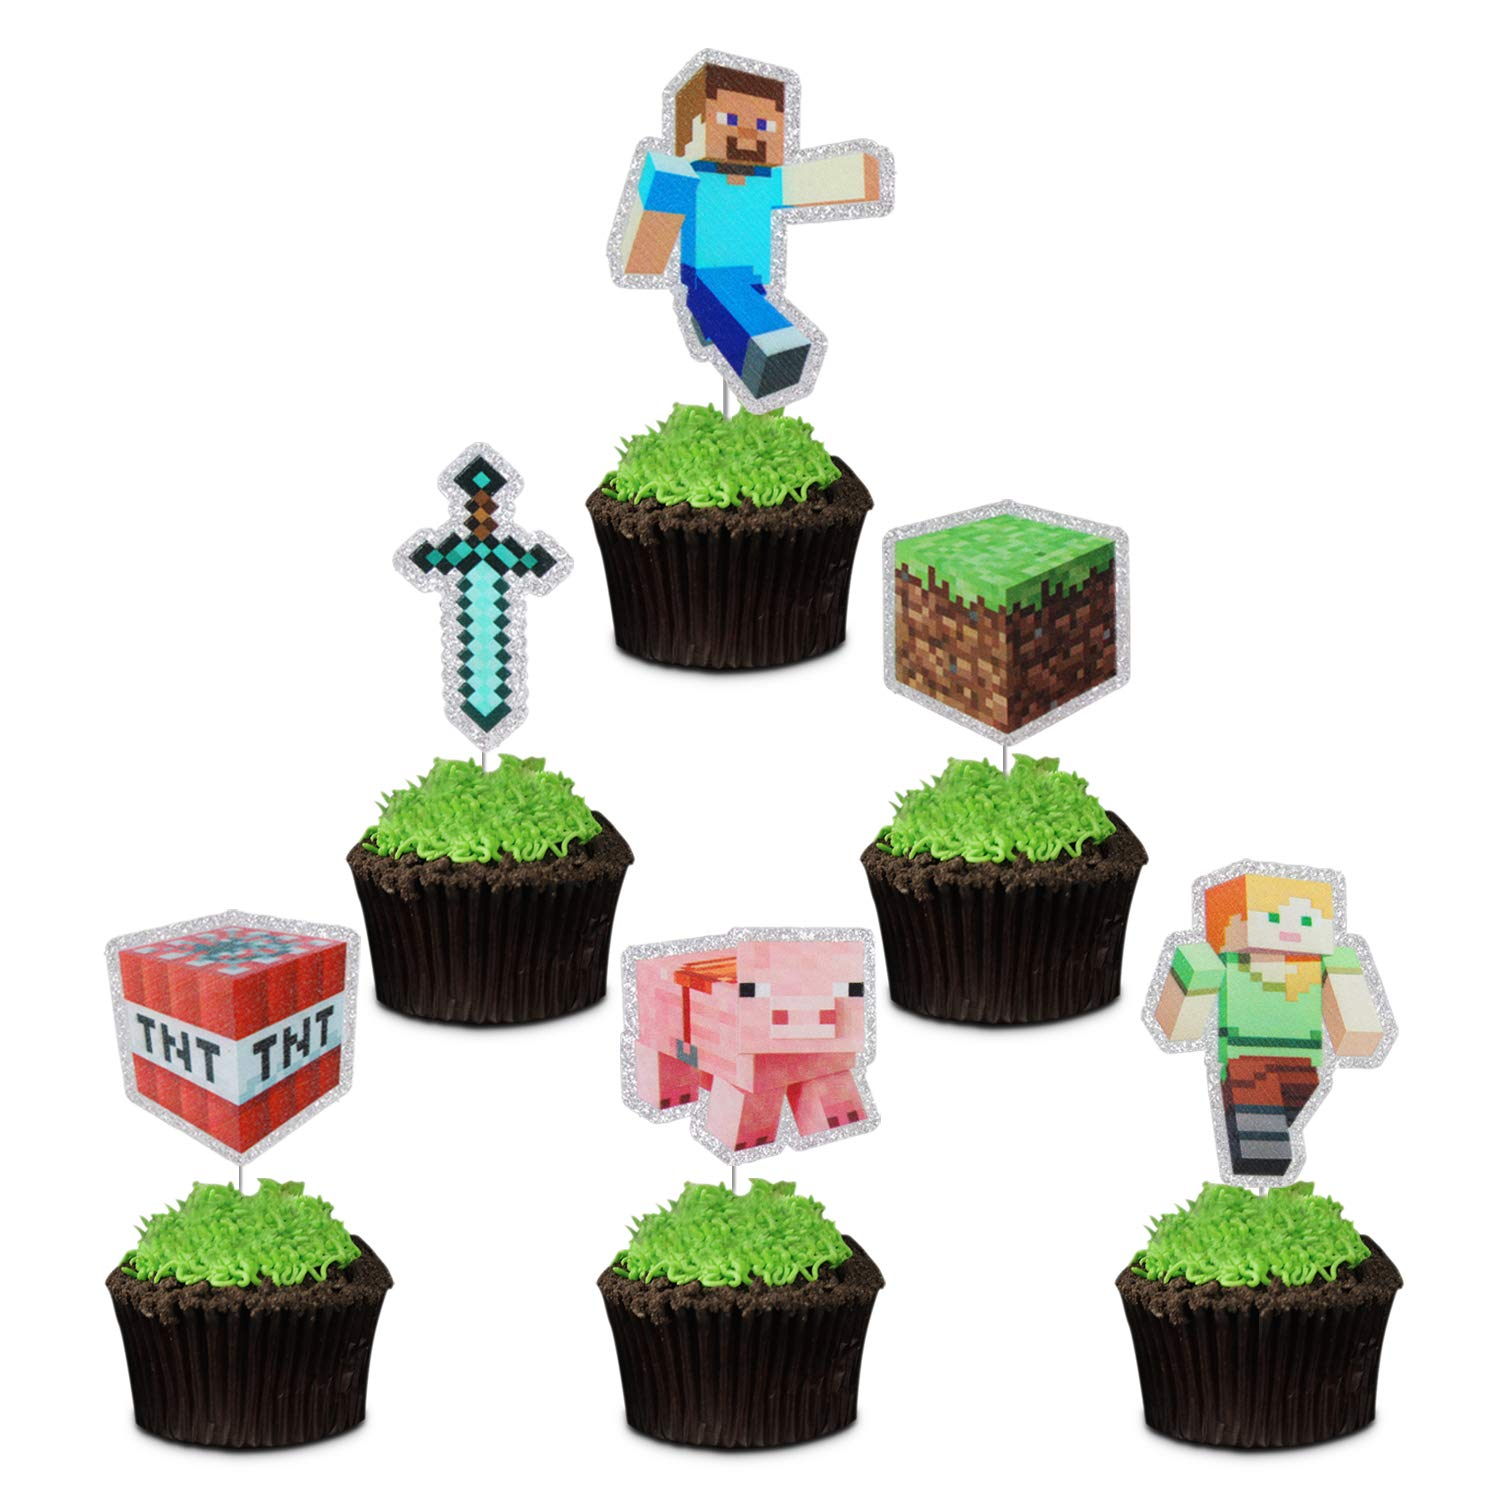 Pixel Miner Crafting Cake Toppers - 24 Pcs Video Game Block Scared Games Inspired Food Picks for Children's or Adults Birthday Baby Shower Party Supplies